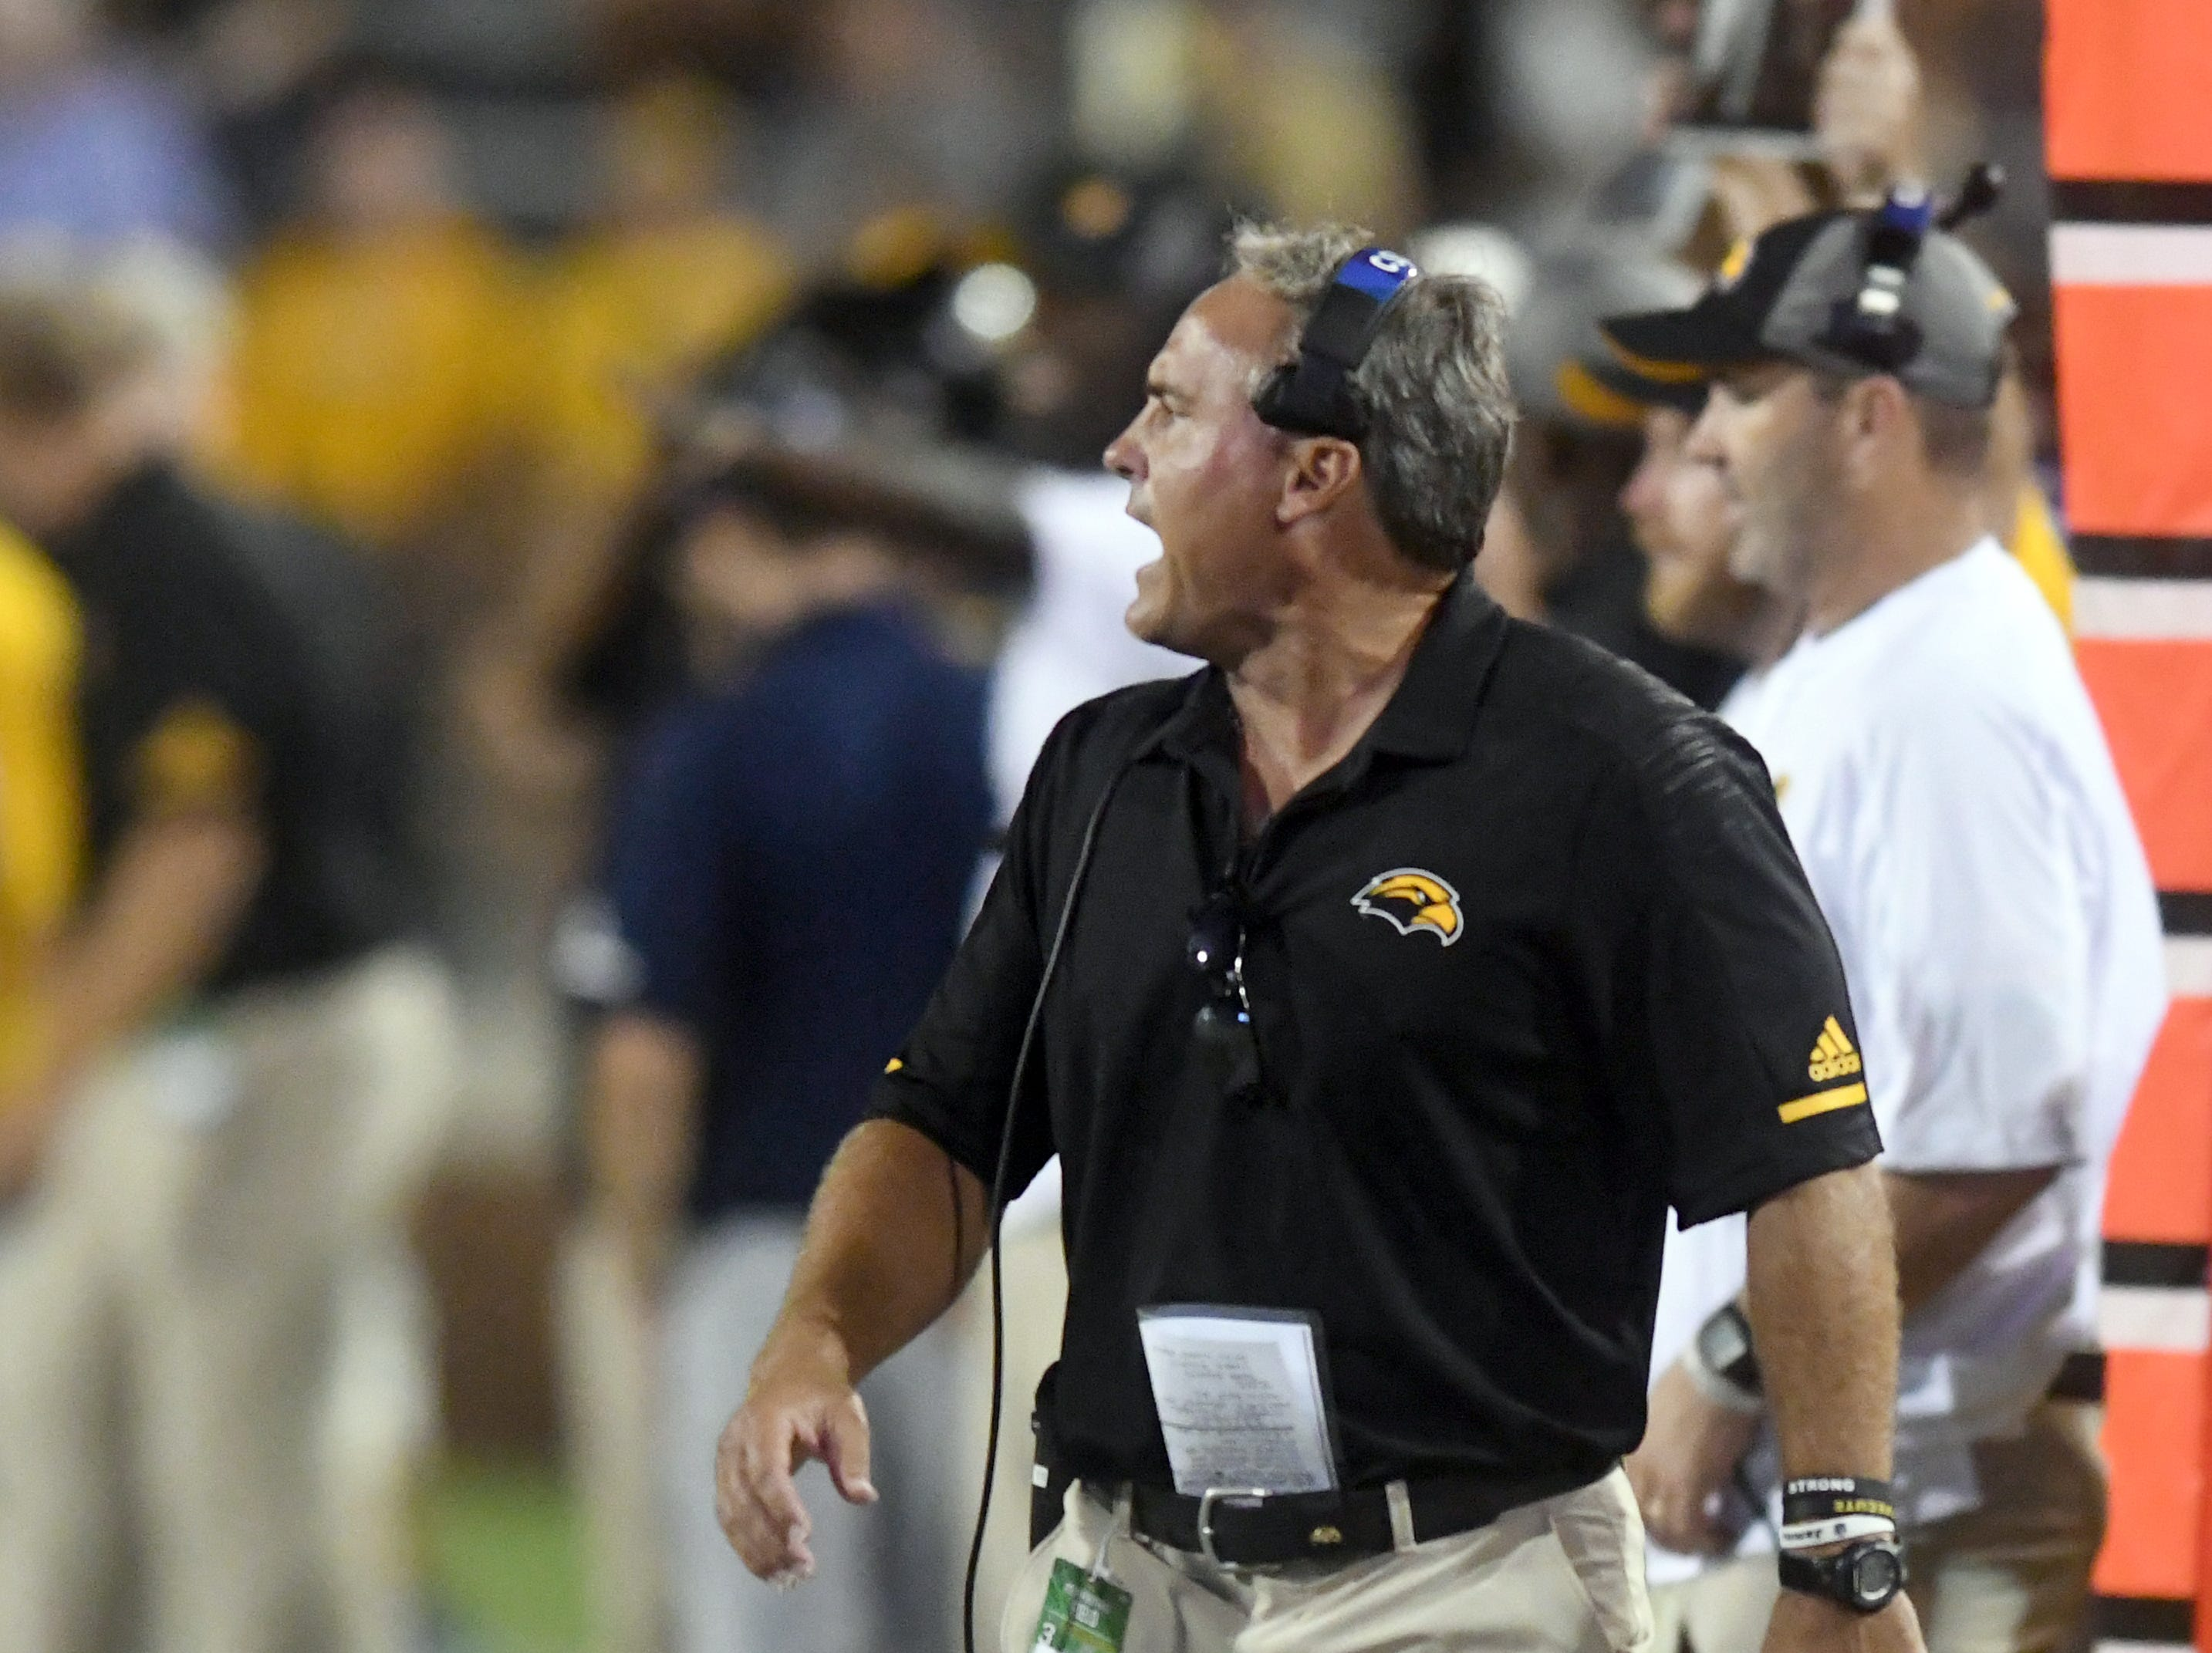 Southern Miss head coach Jay Hopson yells plays to his players in a game against Rice at M.M. Roberts Stadium on Saturday, September 22, 2018.